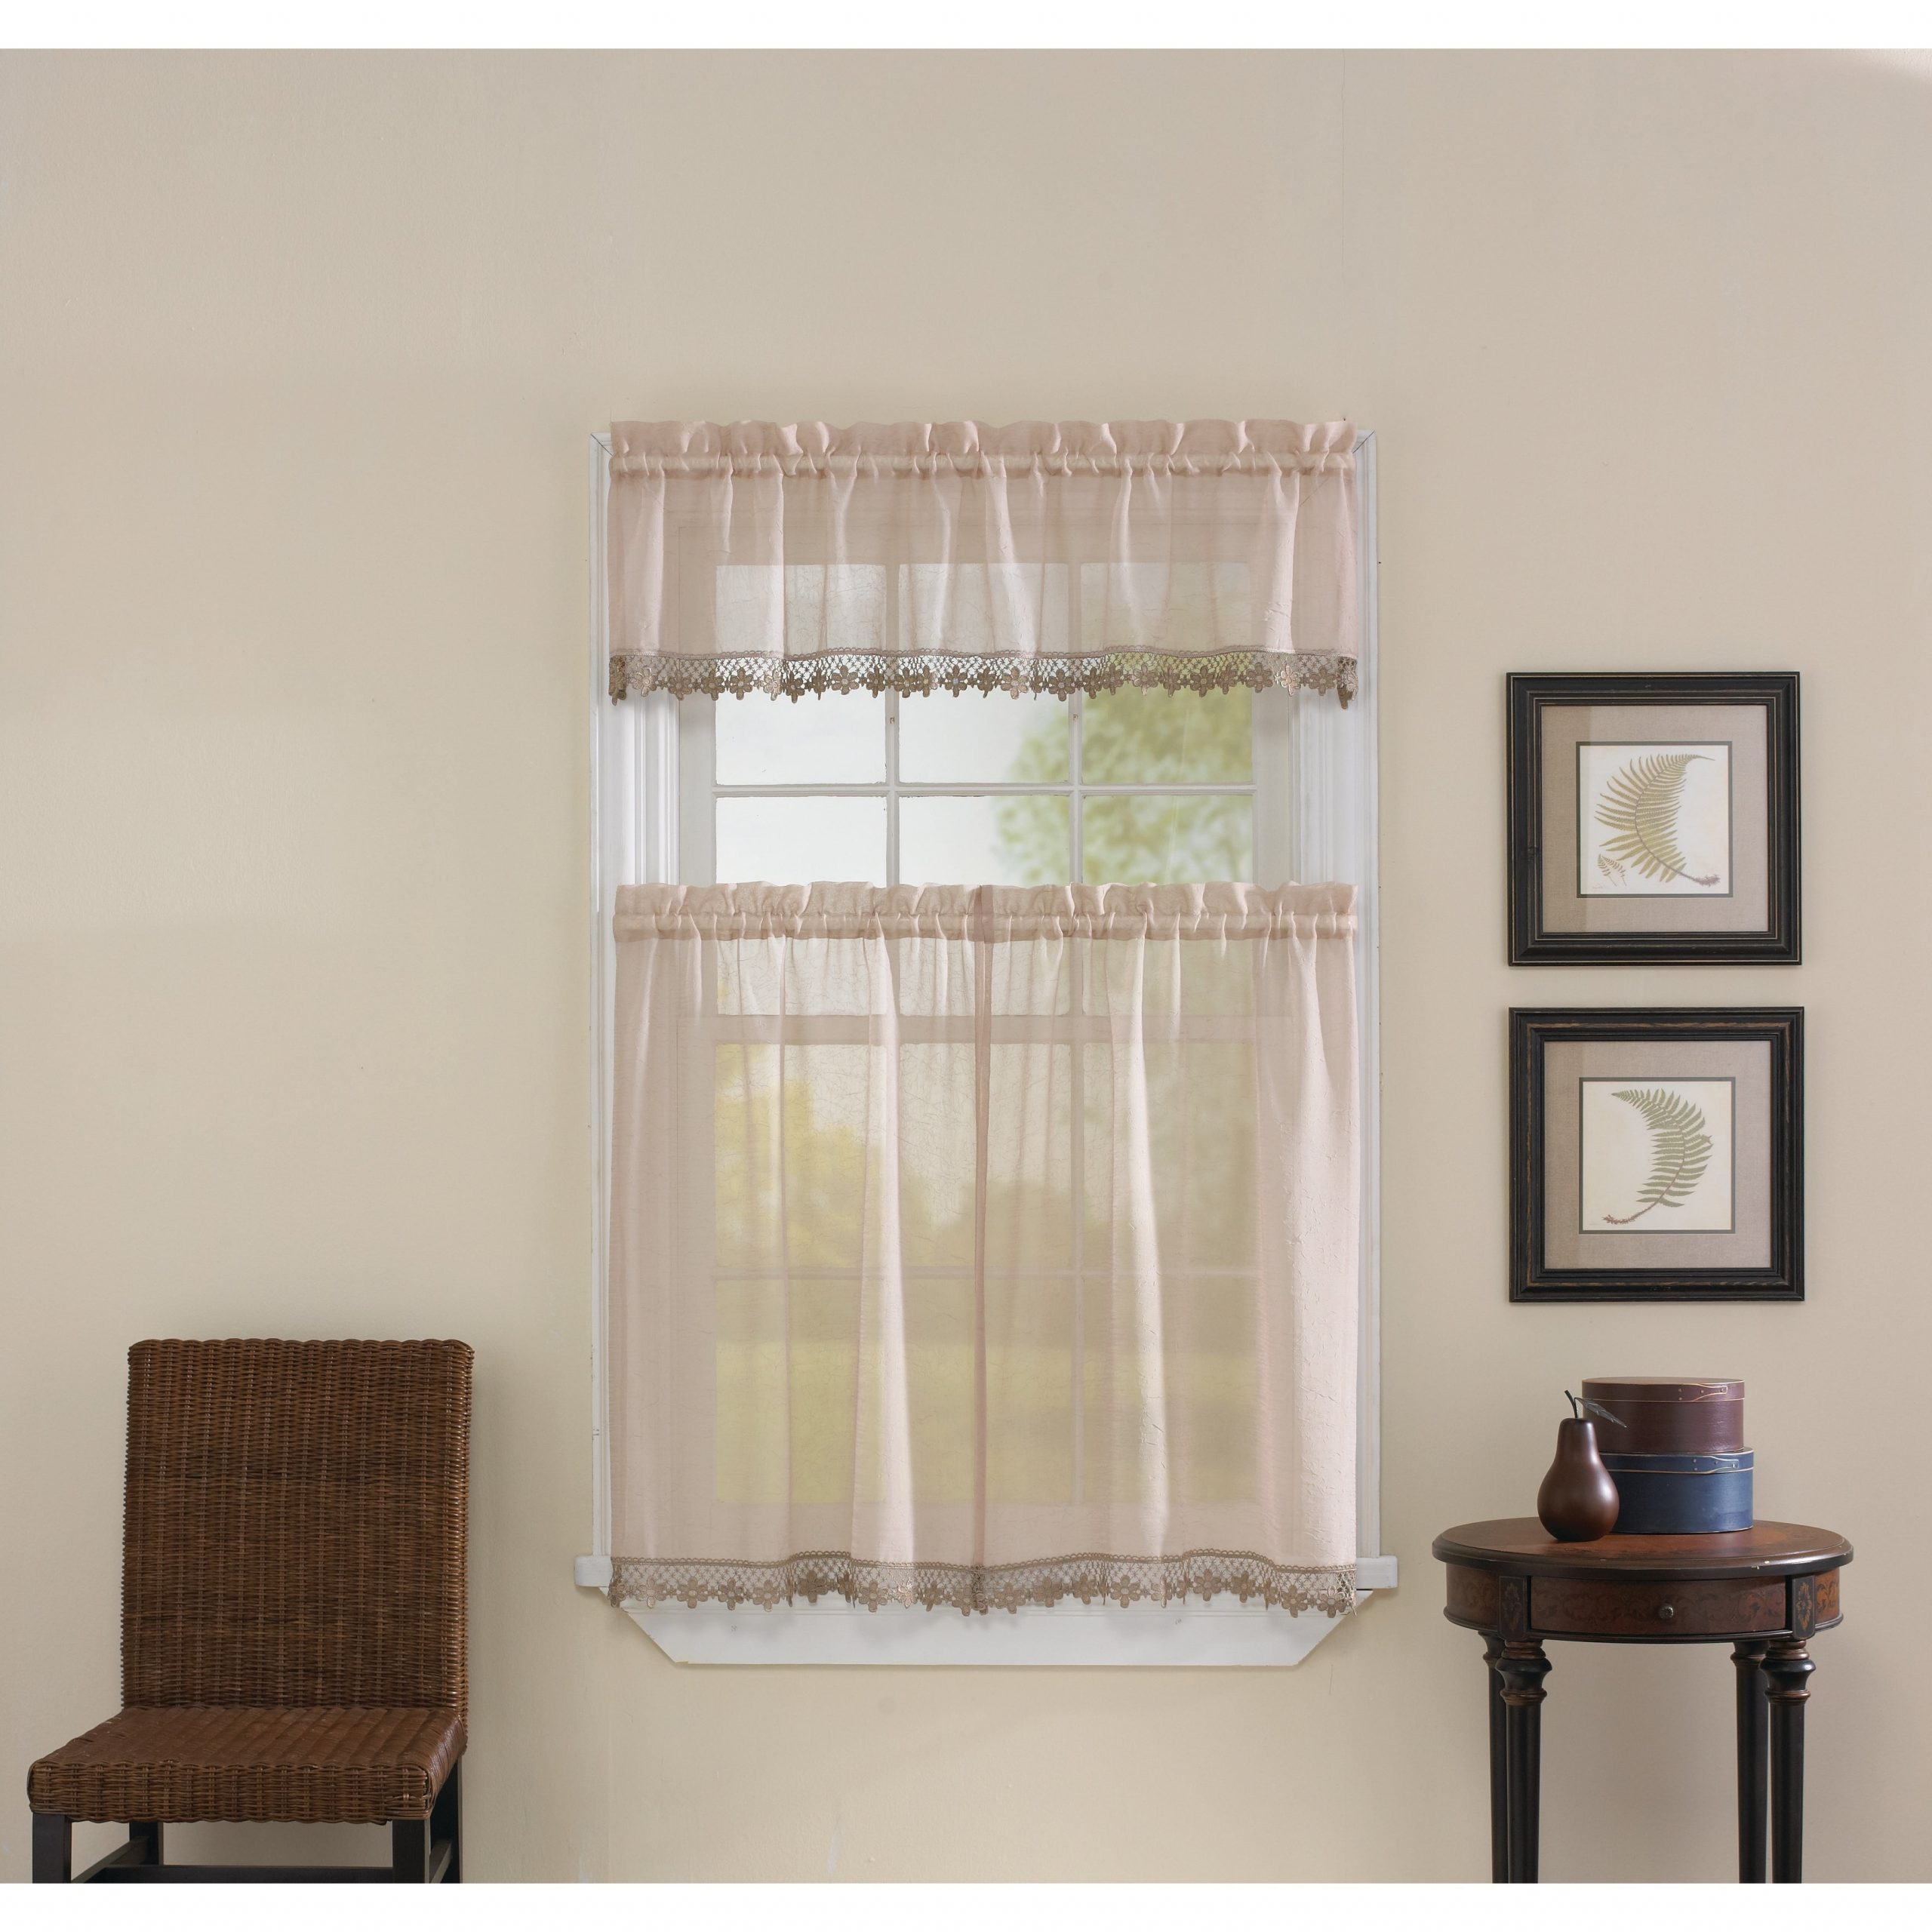 Best And Newest Leanne Tailored Valance And Tier Curtain Collection Regarding Tailored Valance And Tier Curtains (View 8 of 20)